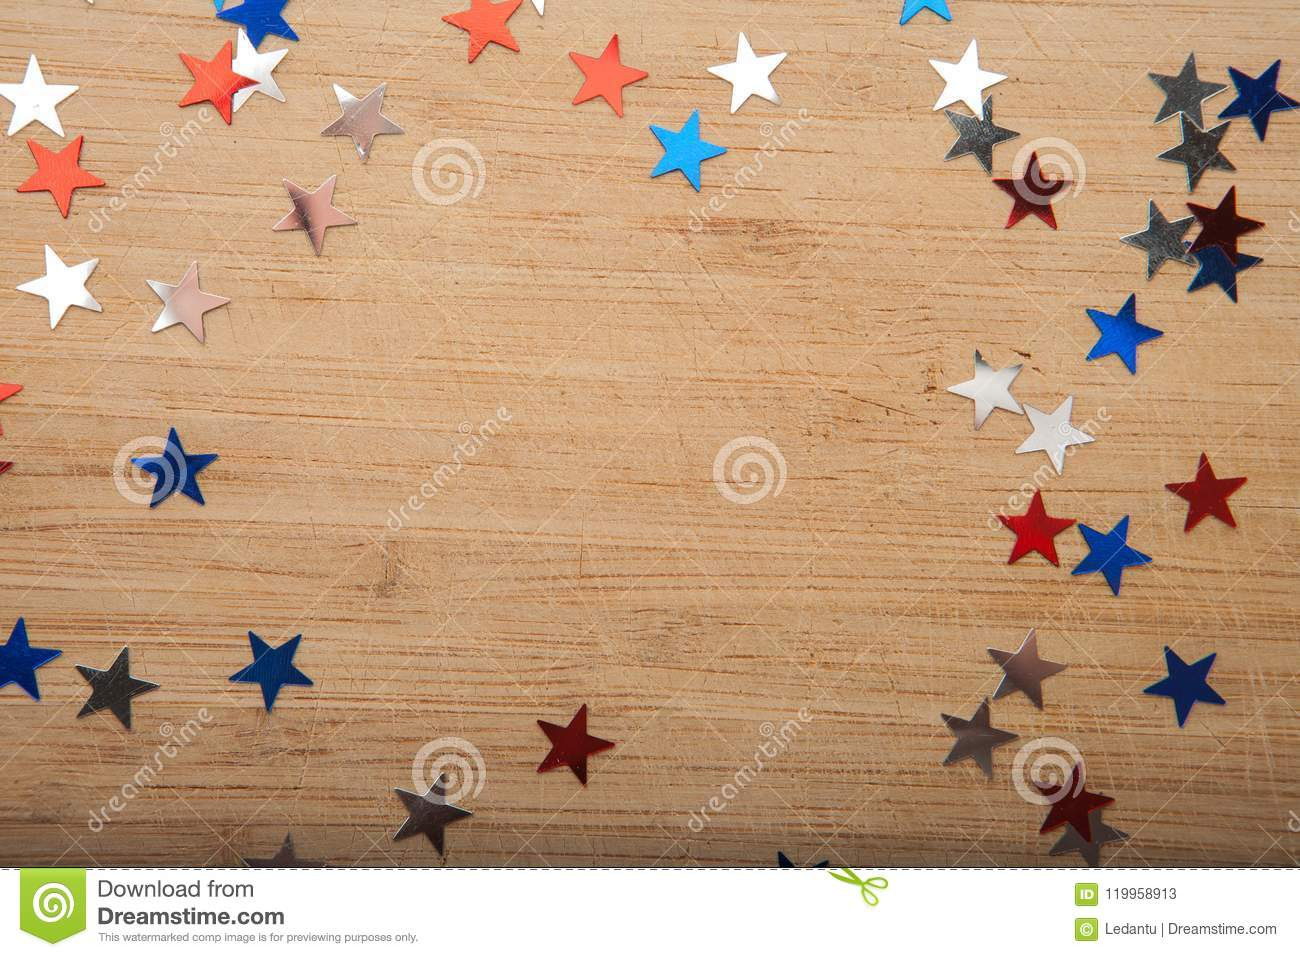 confetti stars on wooden background 4th july independence day